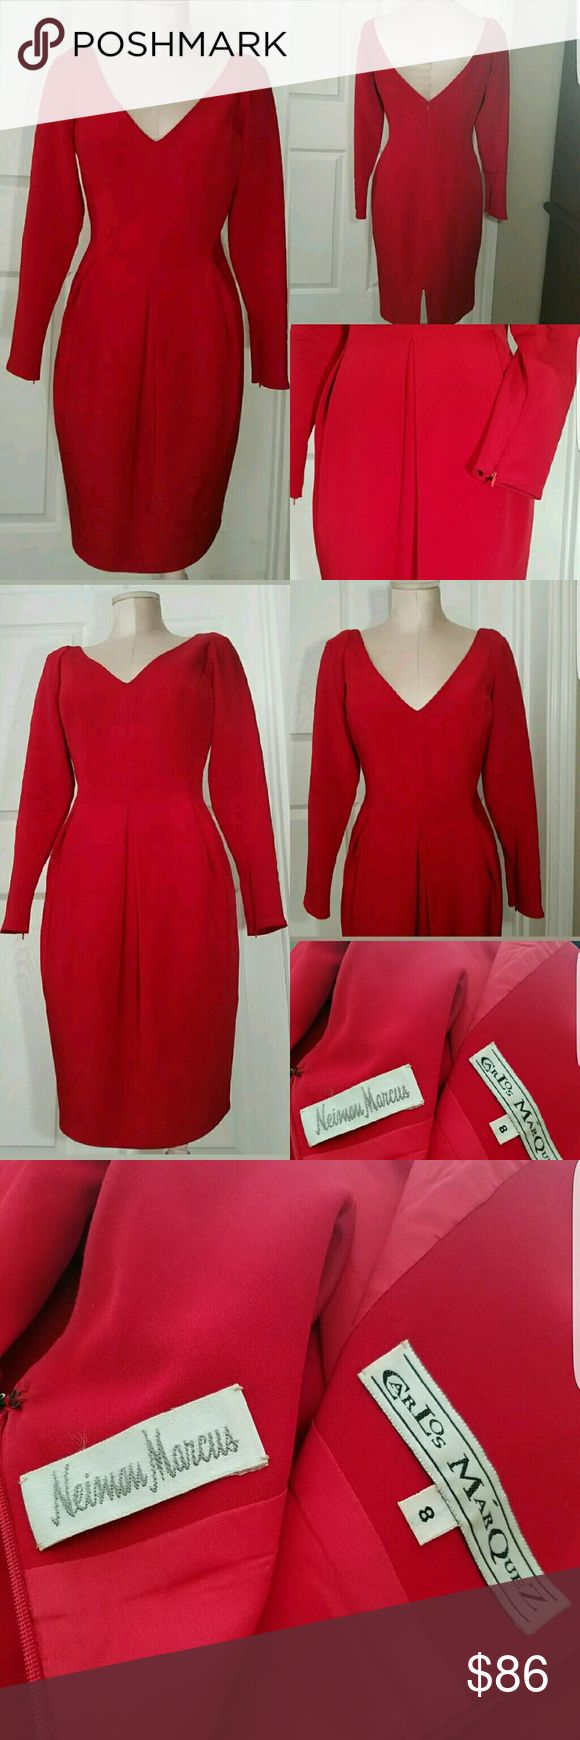 NEIMAN MARCUS 100% SILK CRIMSON V-NECK Midi Dress Up for sale NEIMAN MARCUS 100% SILK CRIMSON RED V-NECK SHEATH MIDI DRESS CARLOS MARQUEZ.  CARLOS MARQUEZ Neiman Marcus  SIZE 8  100% Silk Dress   Pre-Owned,gently preloved. Shows slight signs of wear...please refer to pictures. Neiman Marcus Dresses Midi